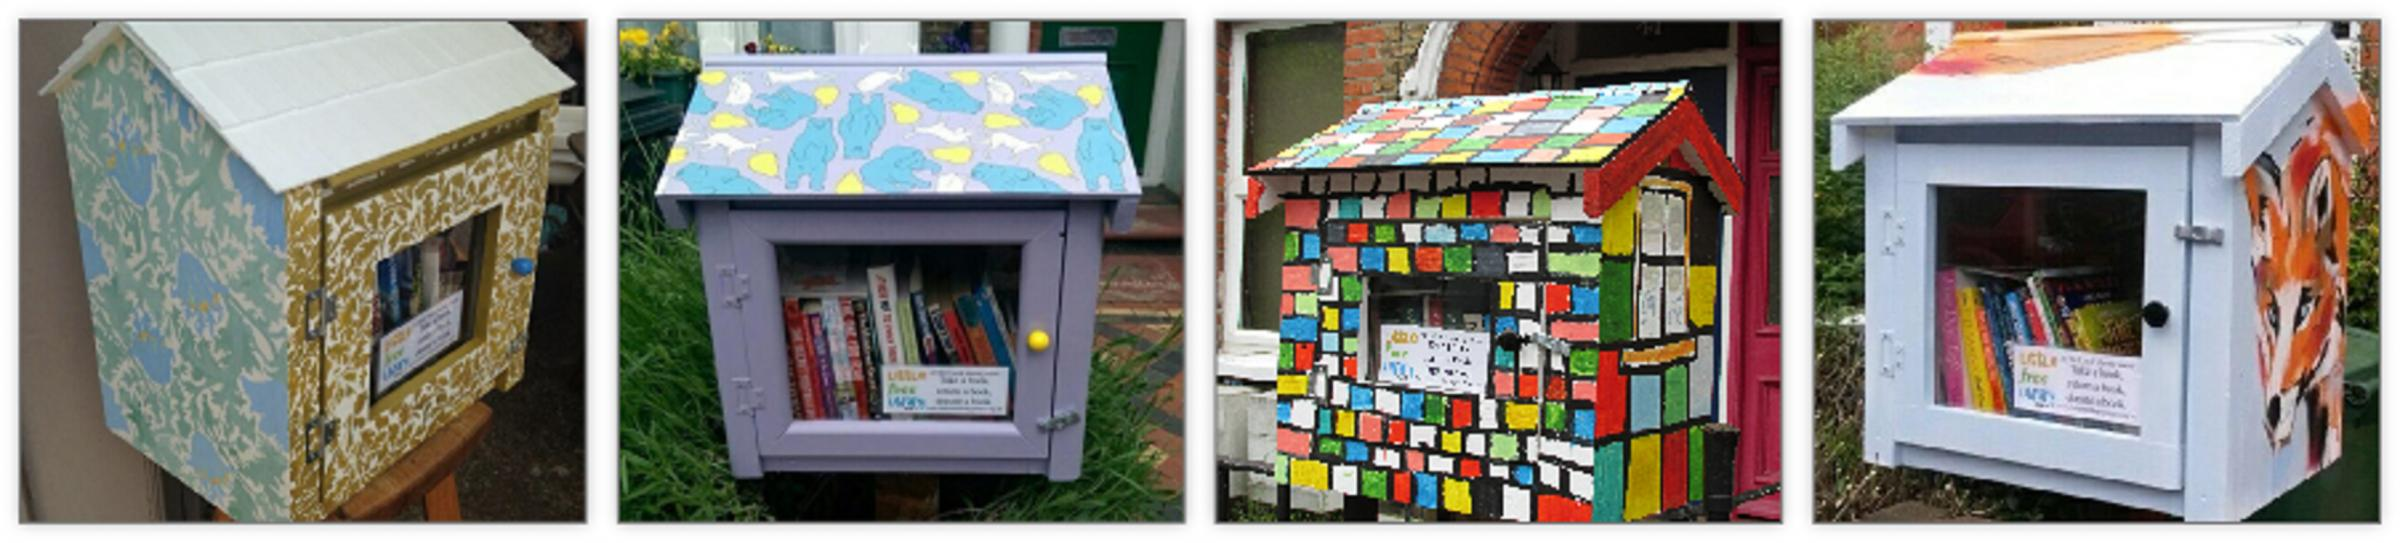 William Morris inspired Little Free Library by Julie Caves, Hare, Bear & Pear by Emma Russell, Cartoon Cat House Little Free Library by Tim Reedy, Urban Fox Little Free Library by Hannah Adamaszek